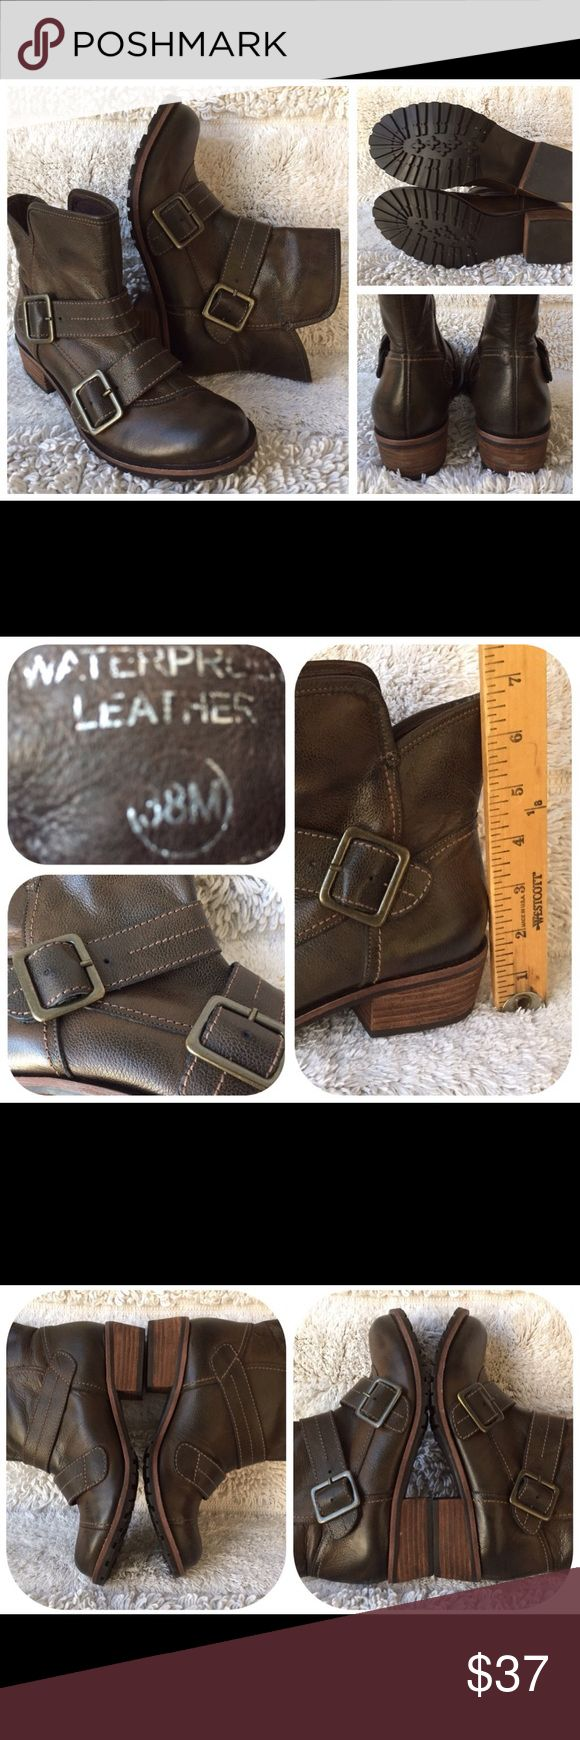 """Waterproof Short Boots Leather Upper & Lining Andre Assous Robin Waterproof Short Boots Leather Upper & Lining Rubber Sole Imported Woman's S/8M 38 Career, Club or motorcycle Buckles """"STORE SAMPLE"""" Made in Brazil U #7047 Andre Assous Shoes Ankle Boots & Booties"""